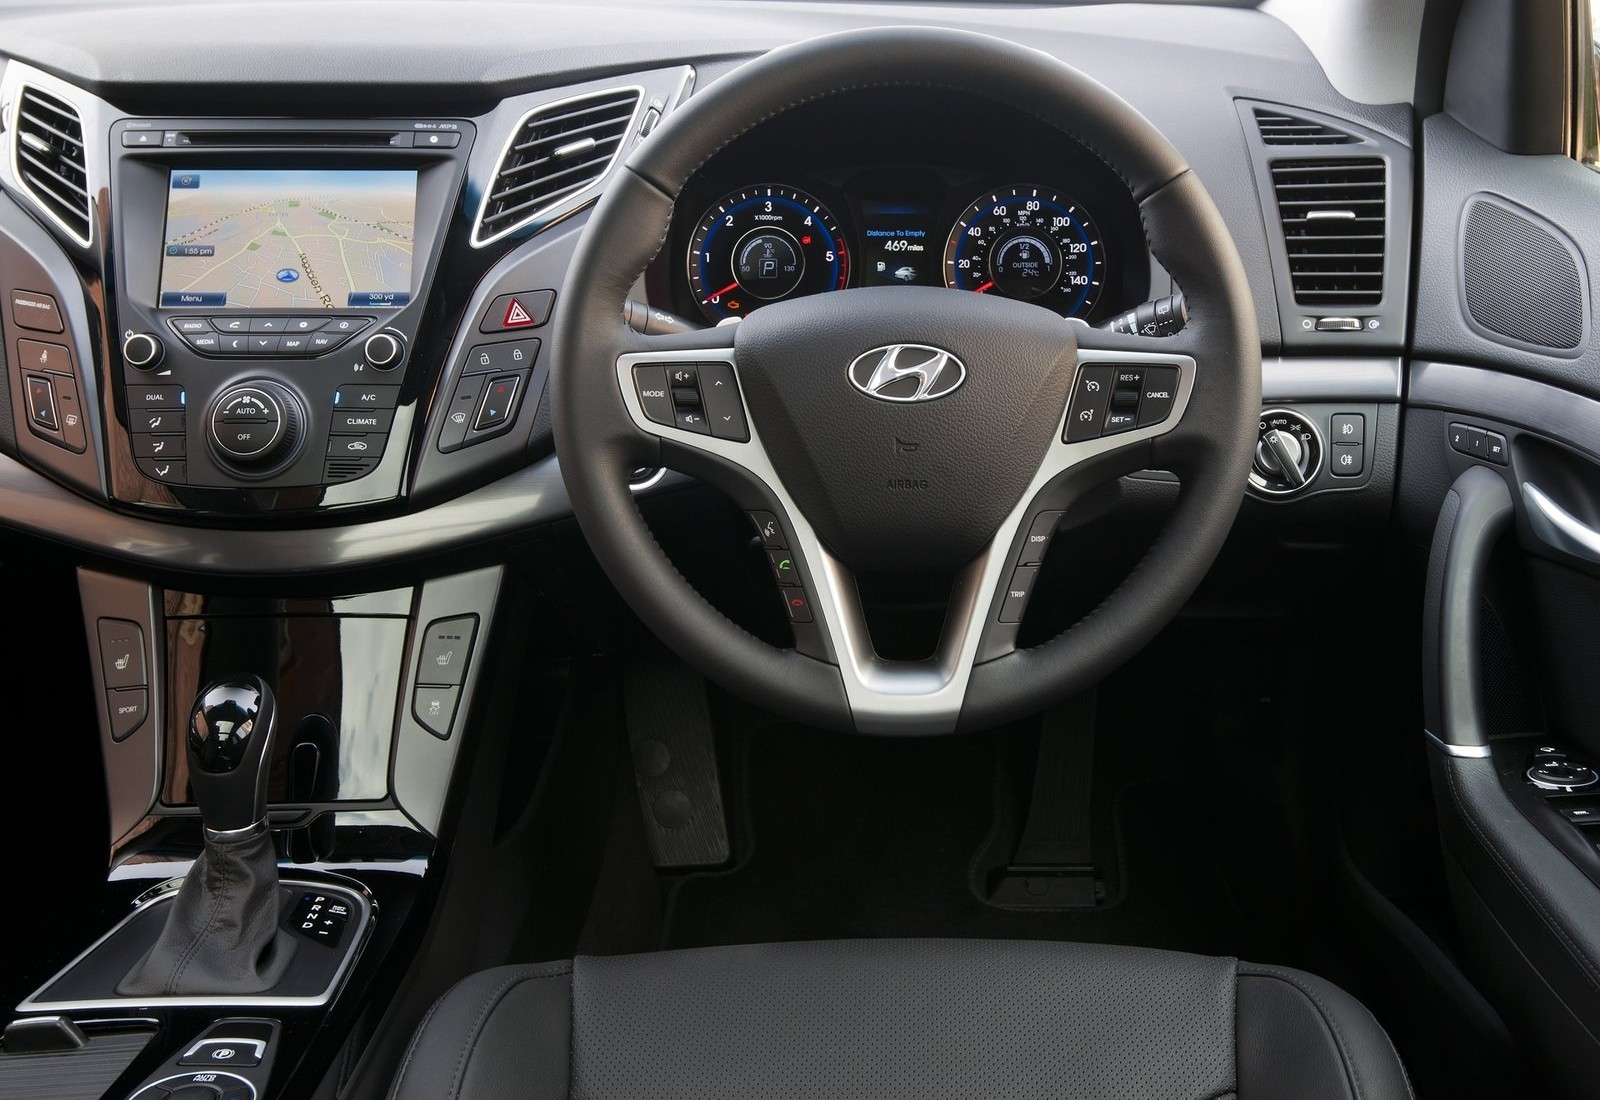 HYUNDAI I40 AT interior